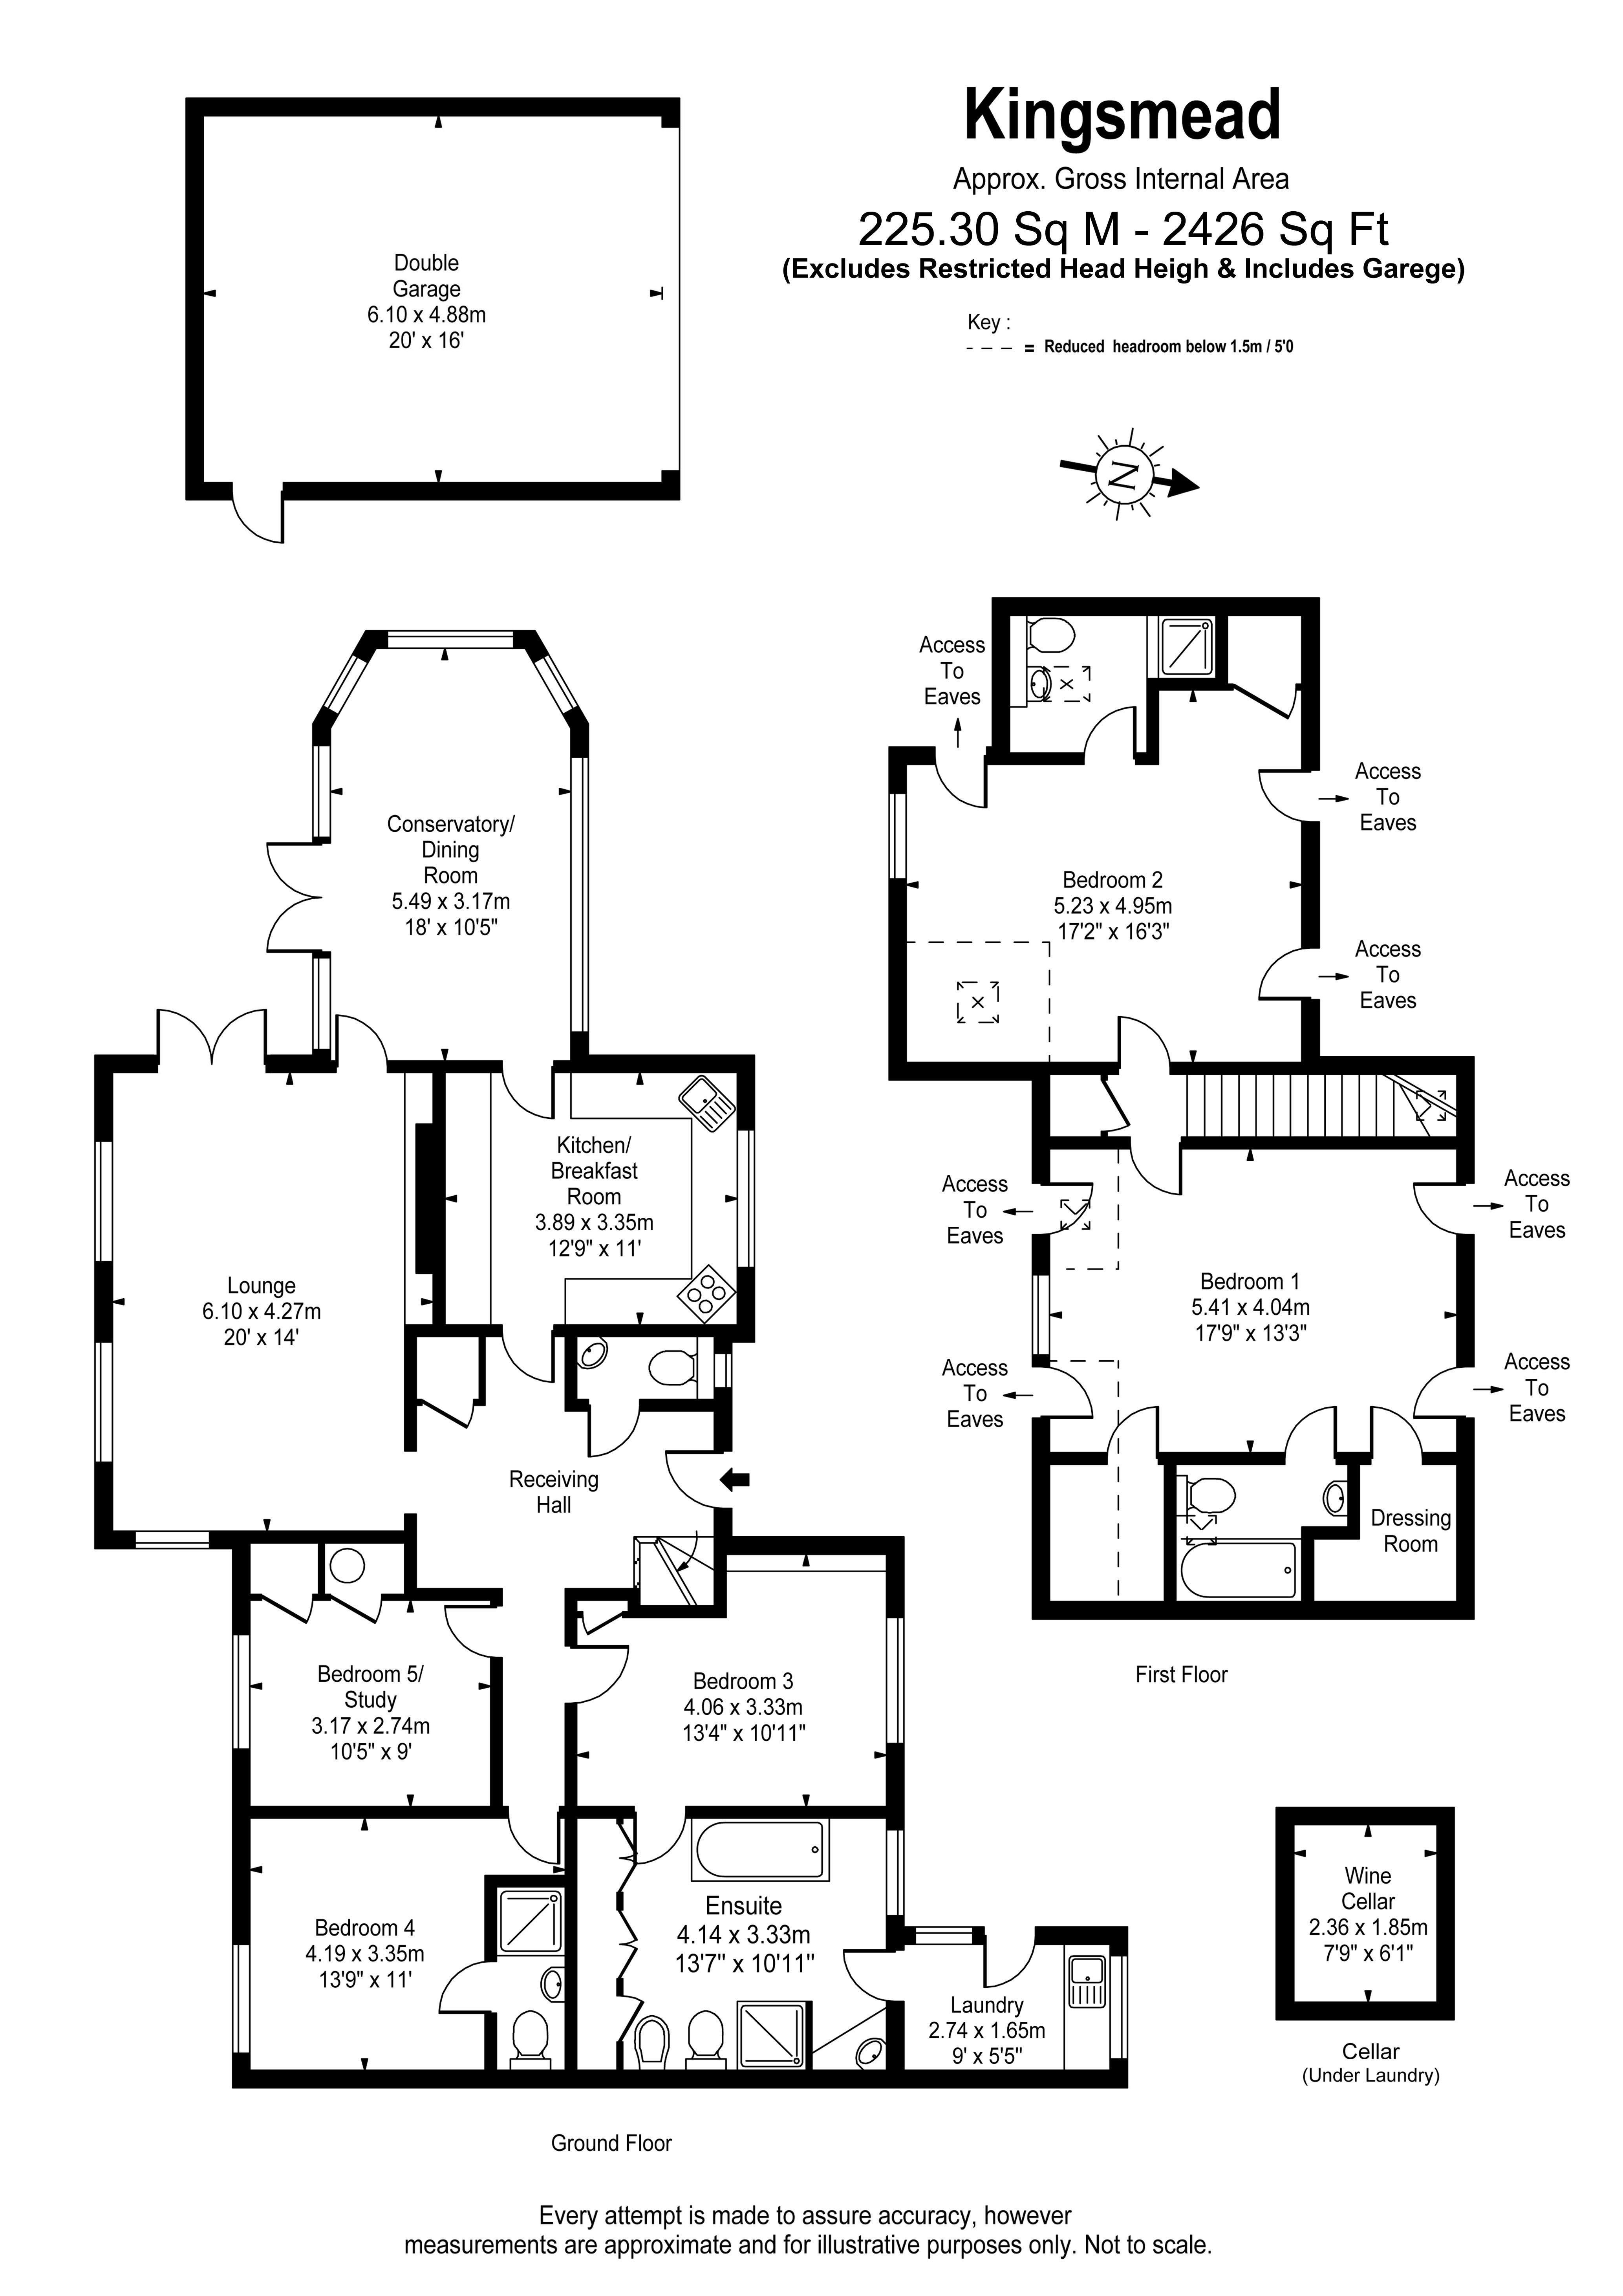 Floorplans For Ruxbury Road, Chertsey